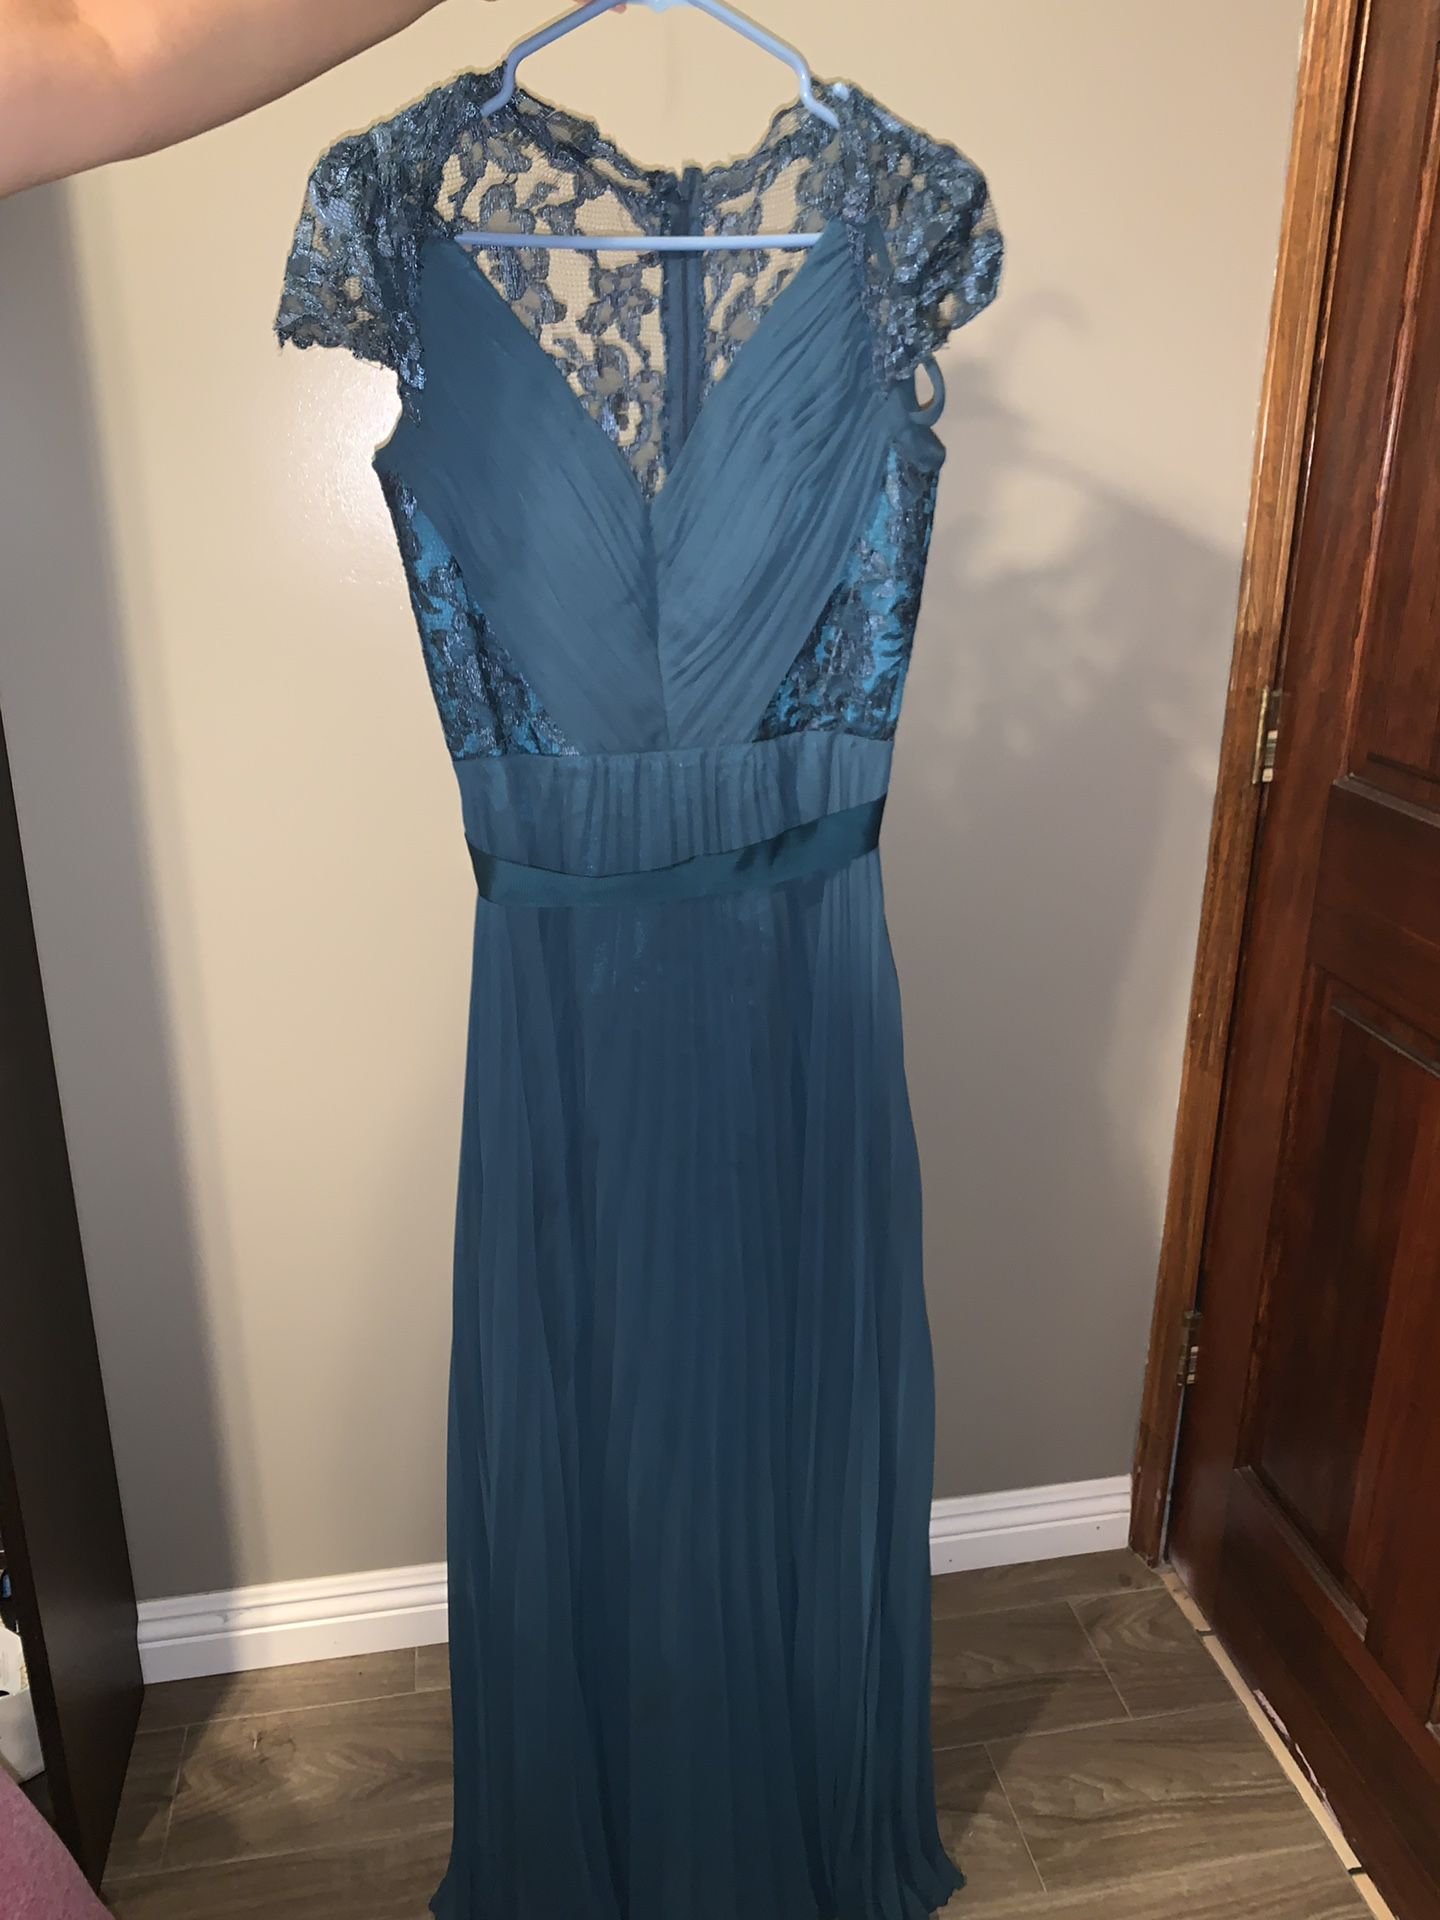 Women's clothes for Sale New and used!